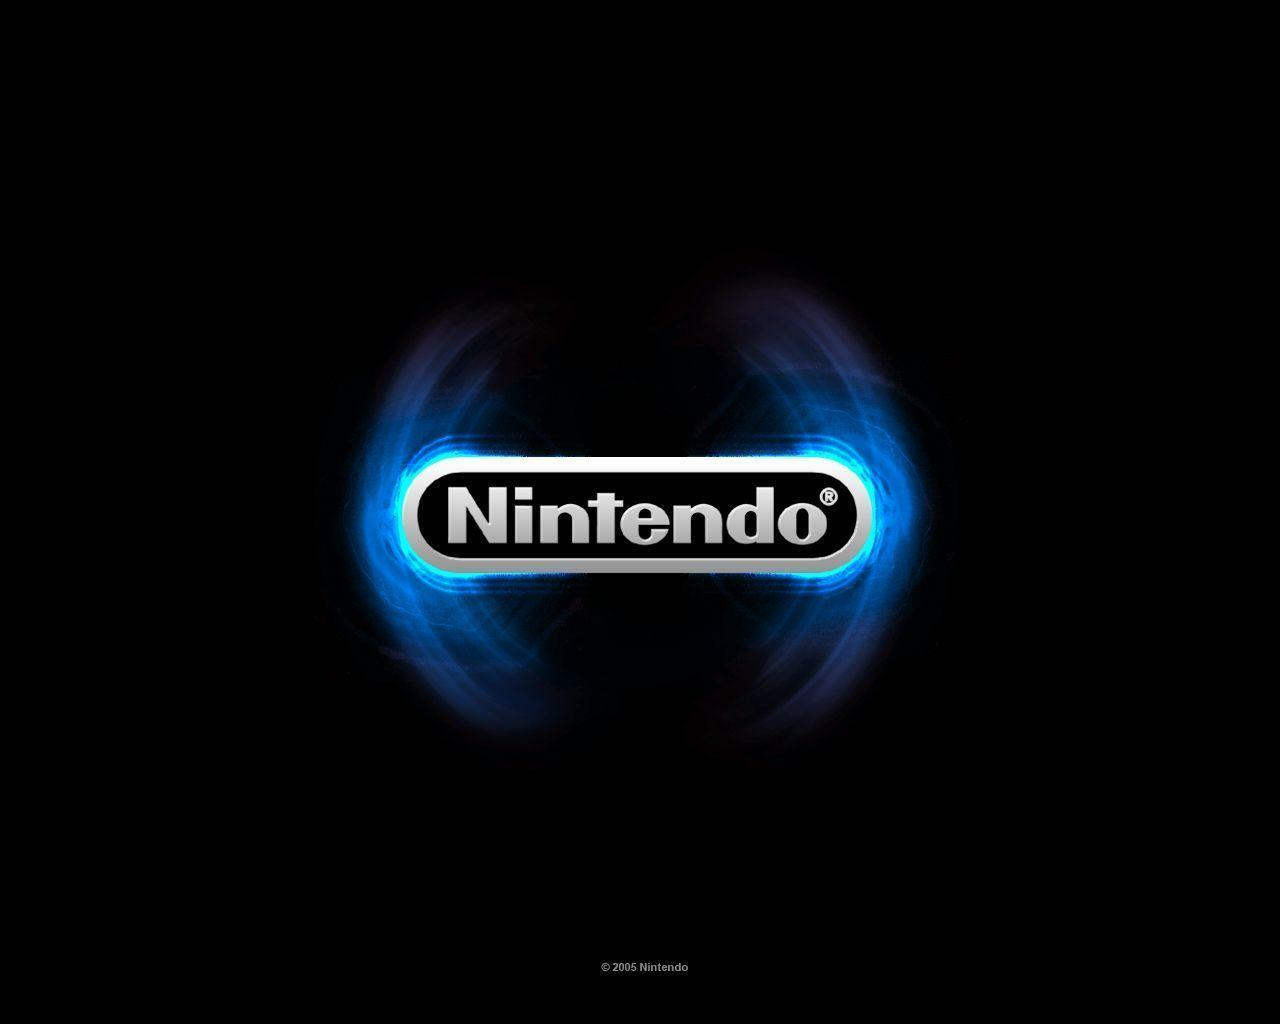 Nintendo Wallpapers - Part 2